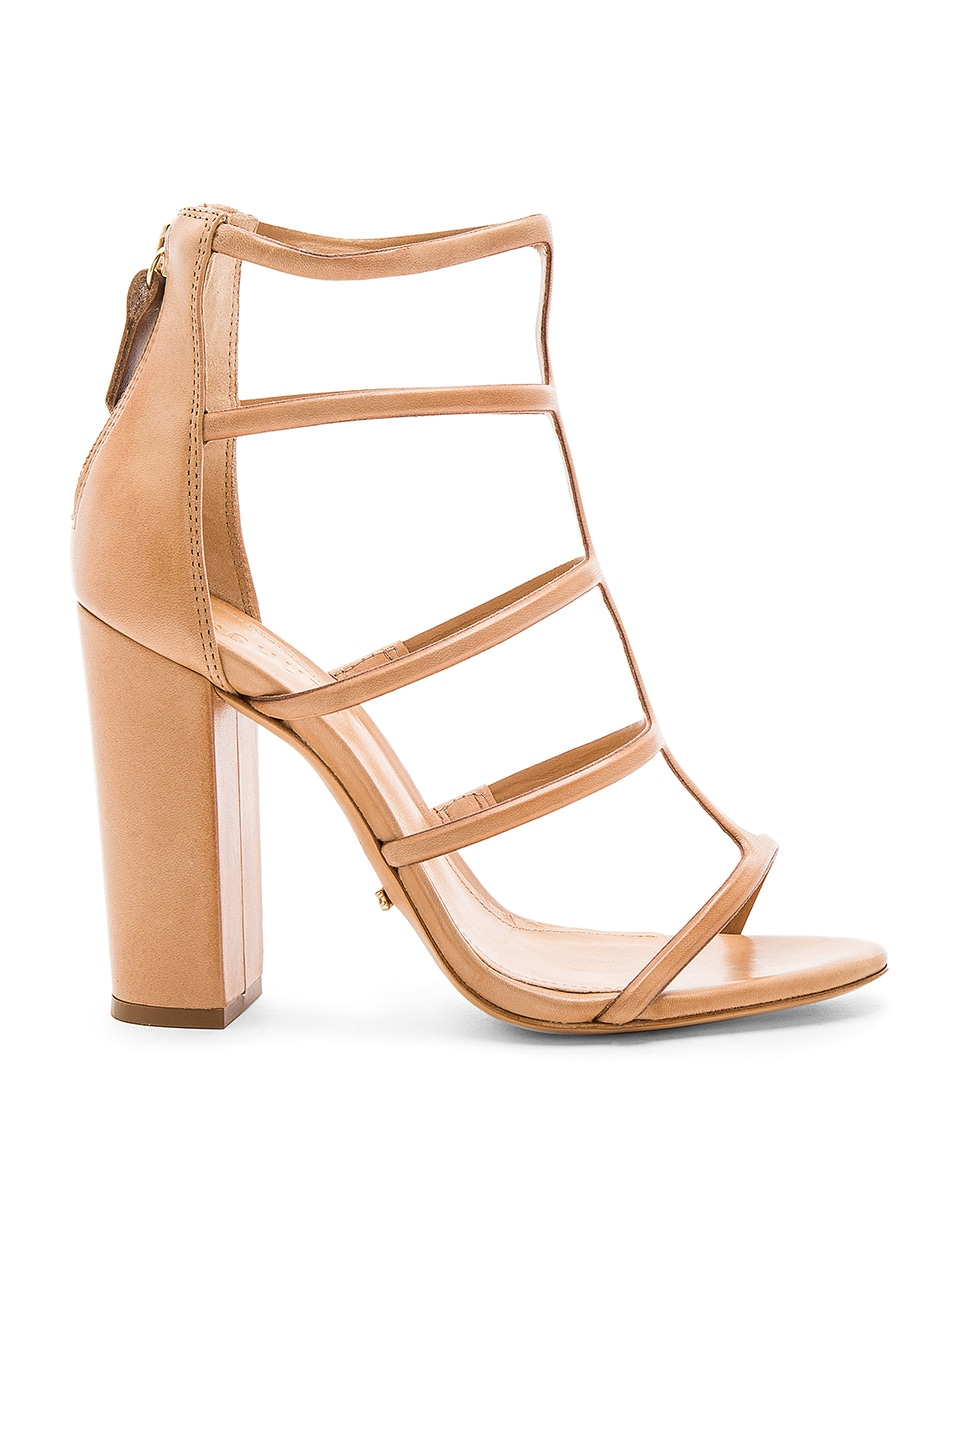 Schutz Sansa Heel in Light Wood